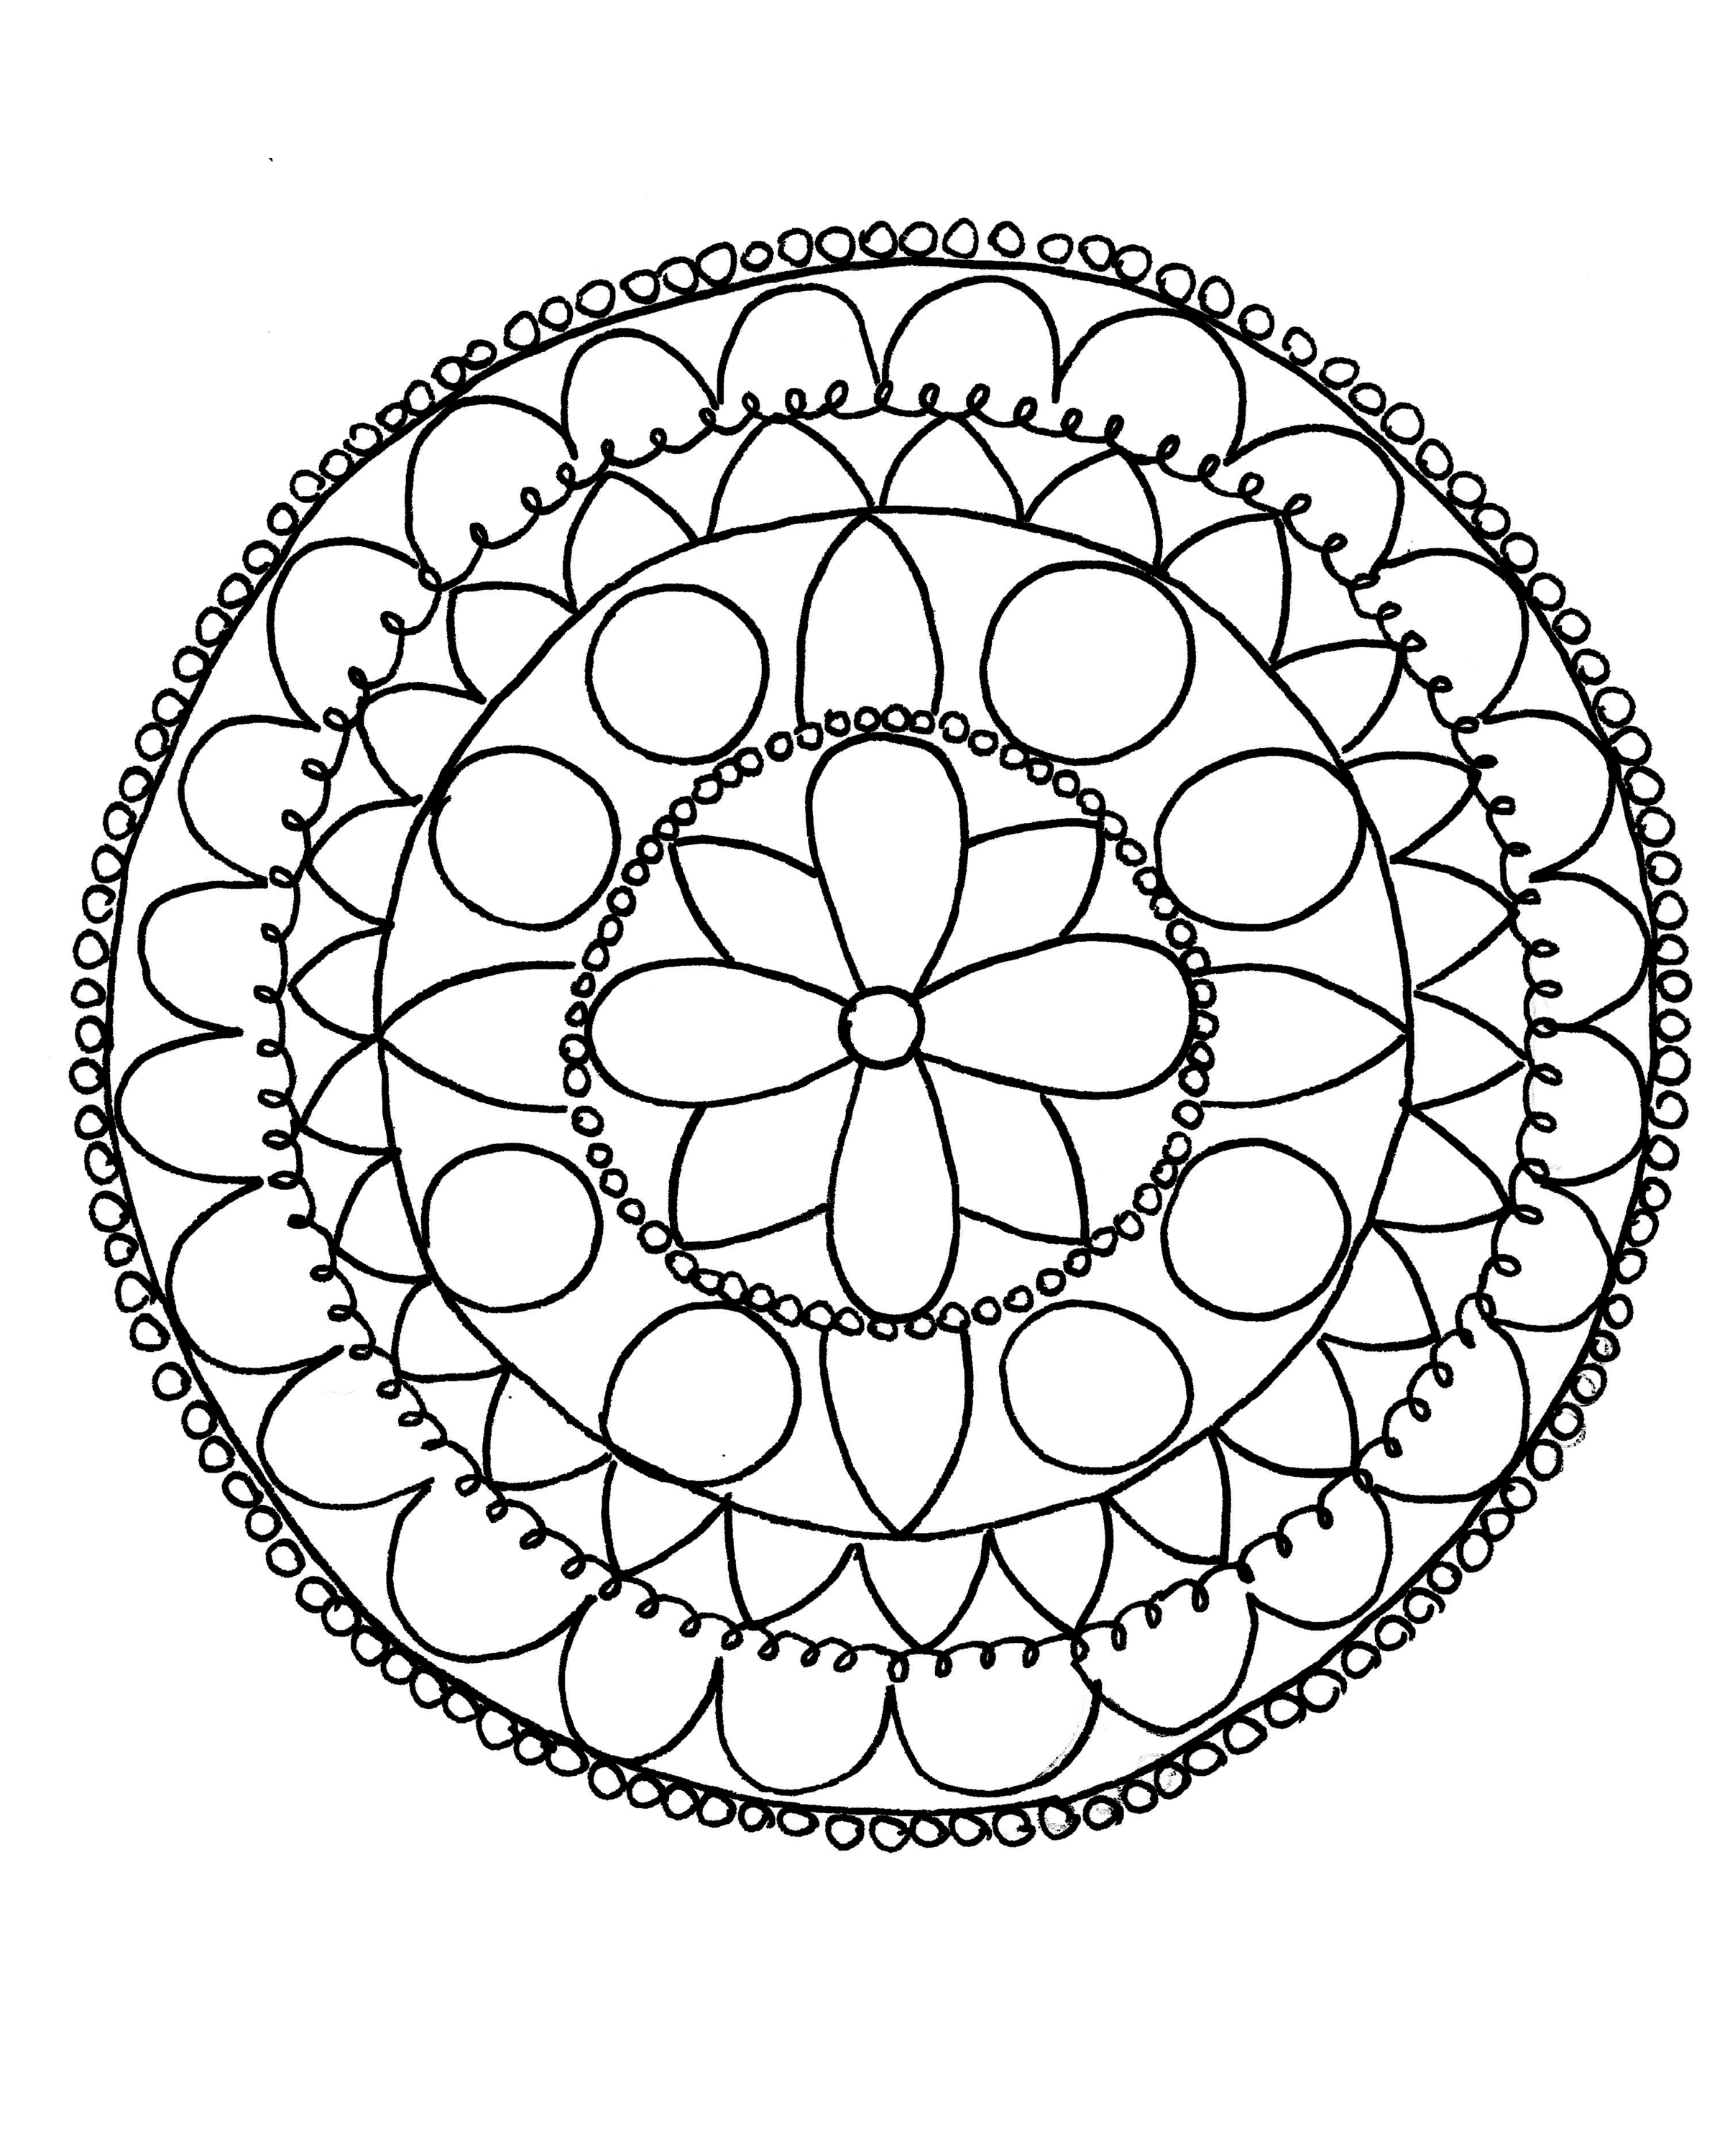 Simple Mandala Drawing At Getdrawings Com Free For Personal Use